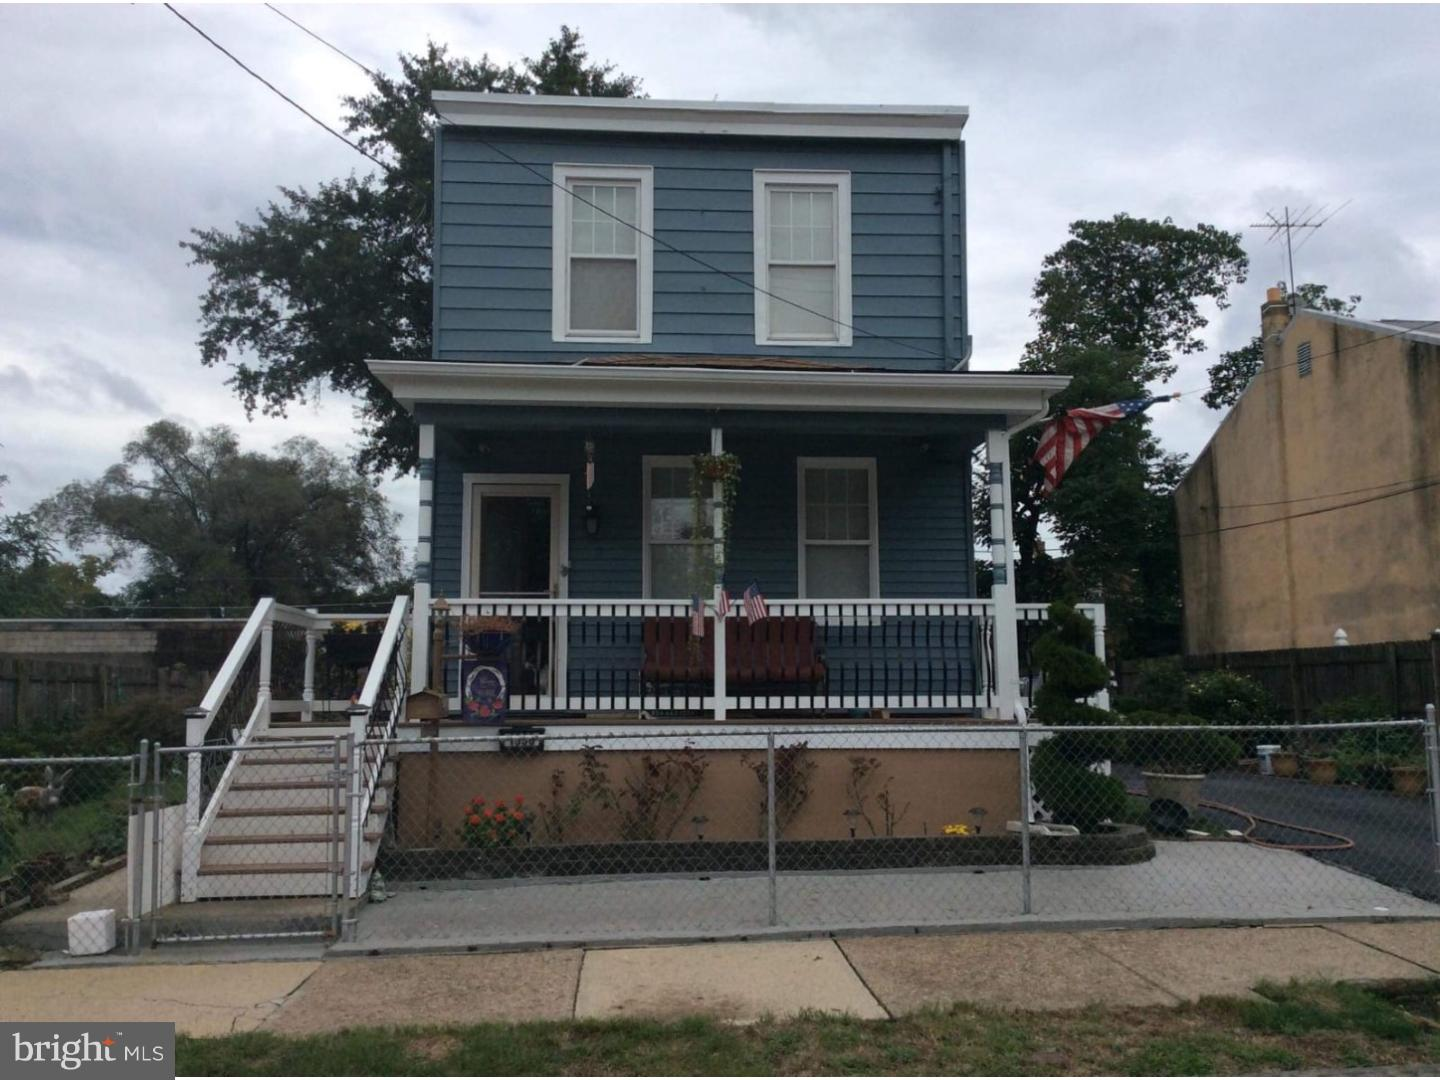 1038 N 20TH STREET, CAMDEN, NJ 08105